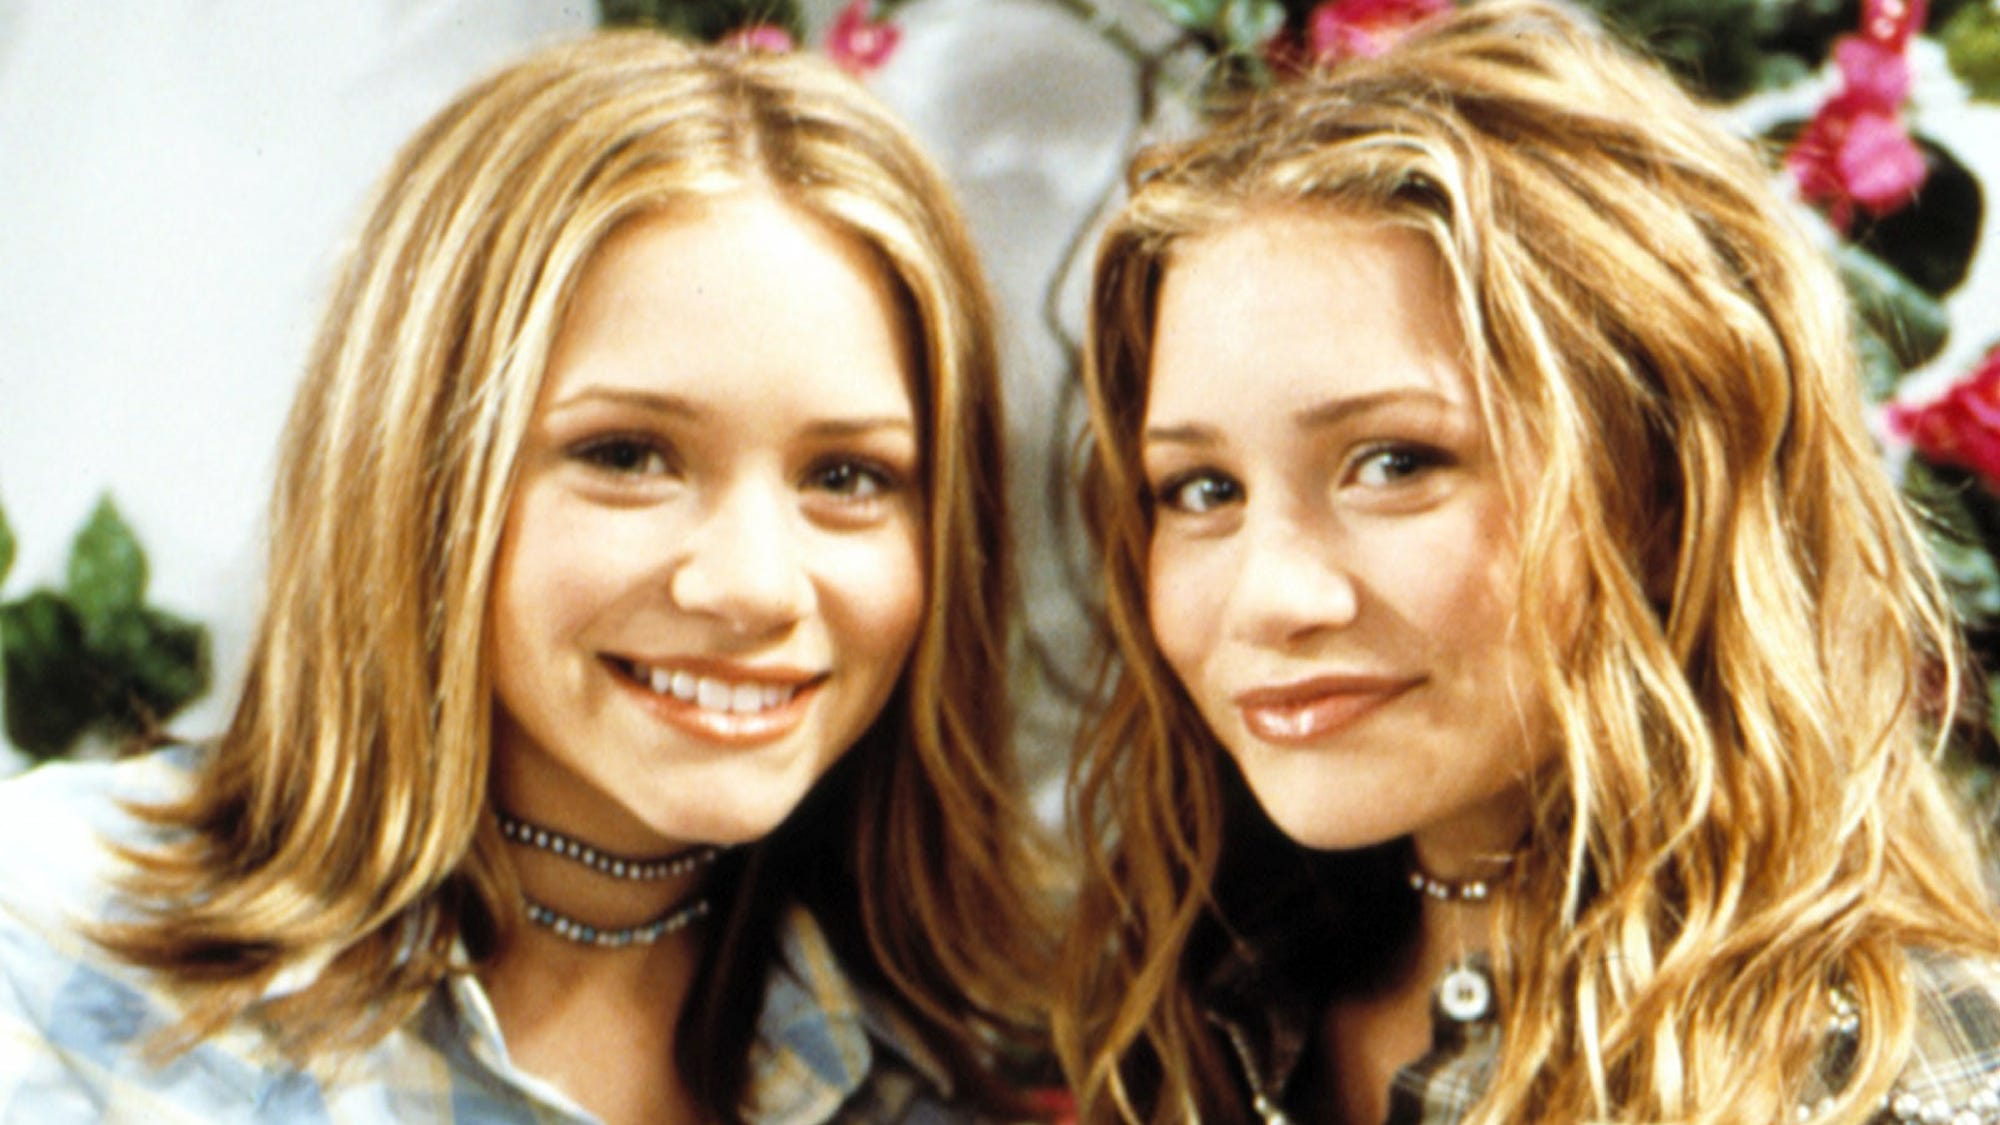 Stories about olsen twins having sex